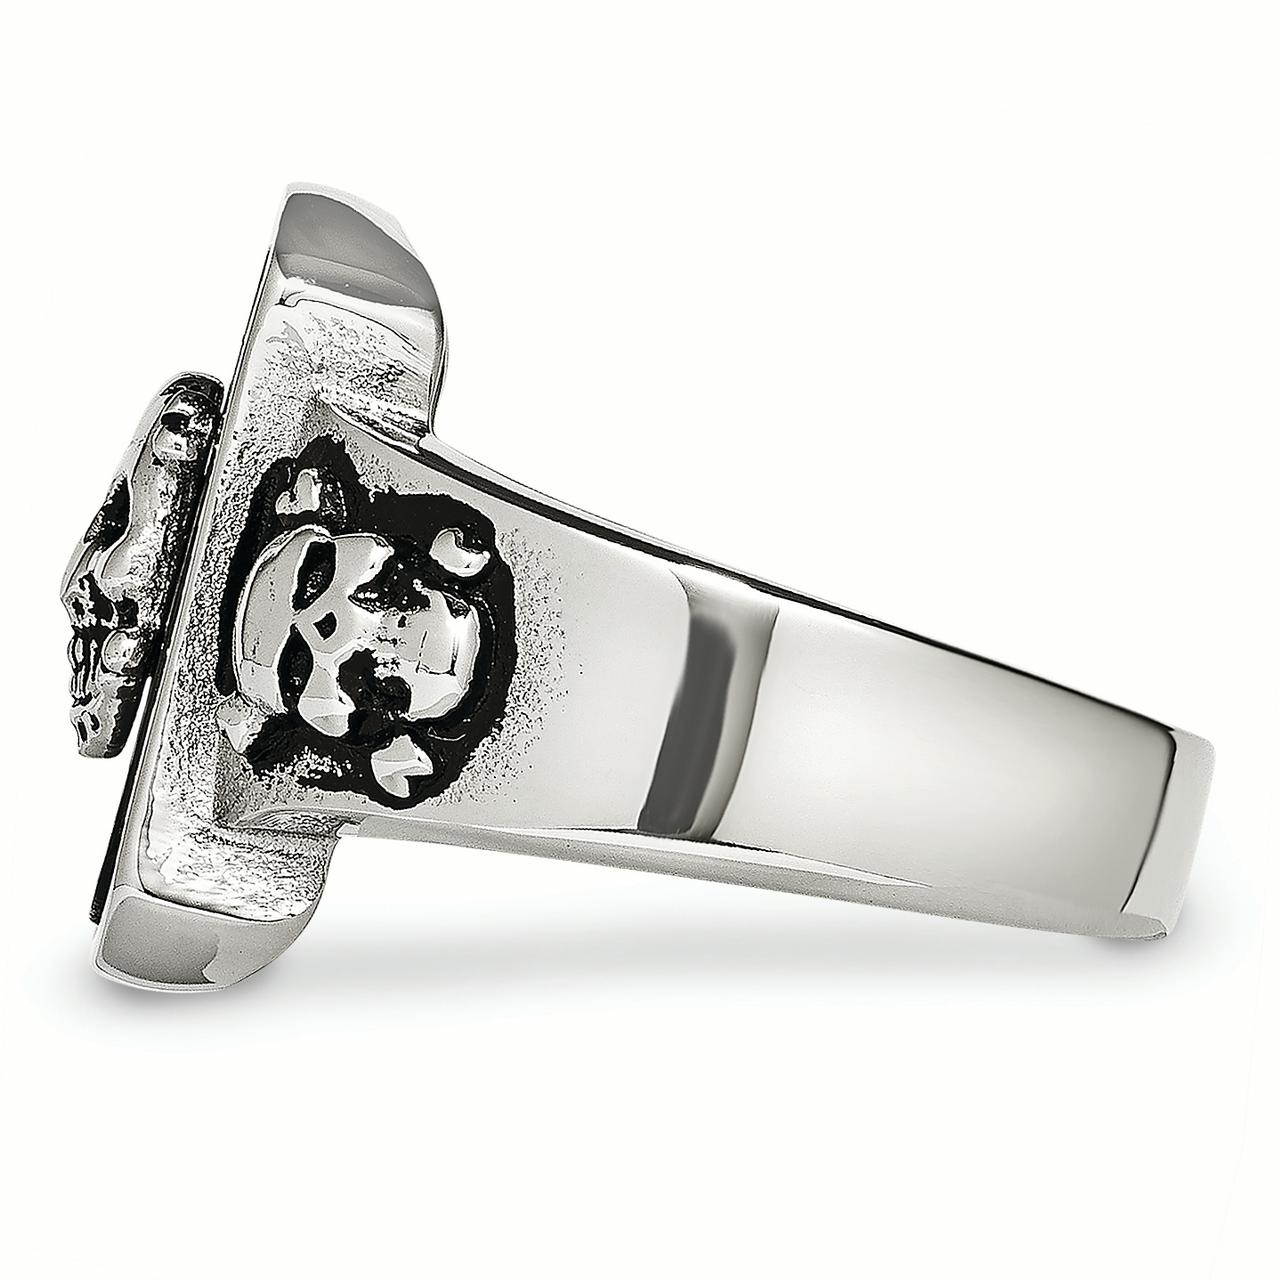 Stainless Steel Black Plated Skulls Band Ring Size 9.00 Skull Fashion Jewelry Gifts For Women For Her - image 4 of 7